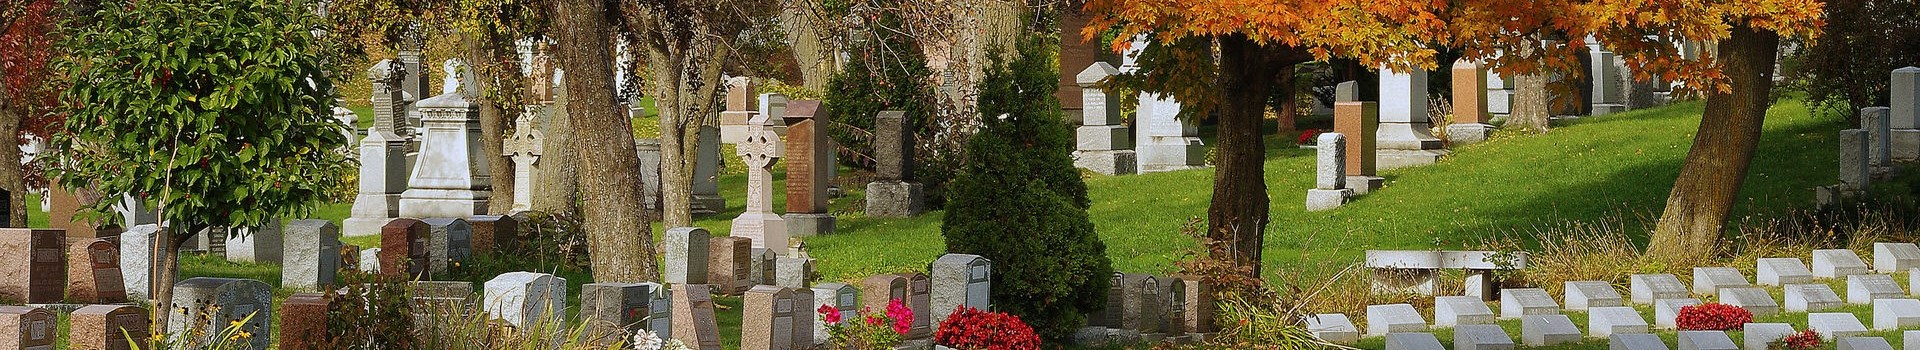 headstones in cemetery